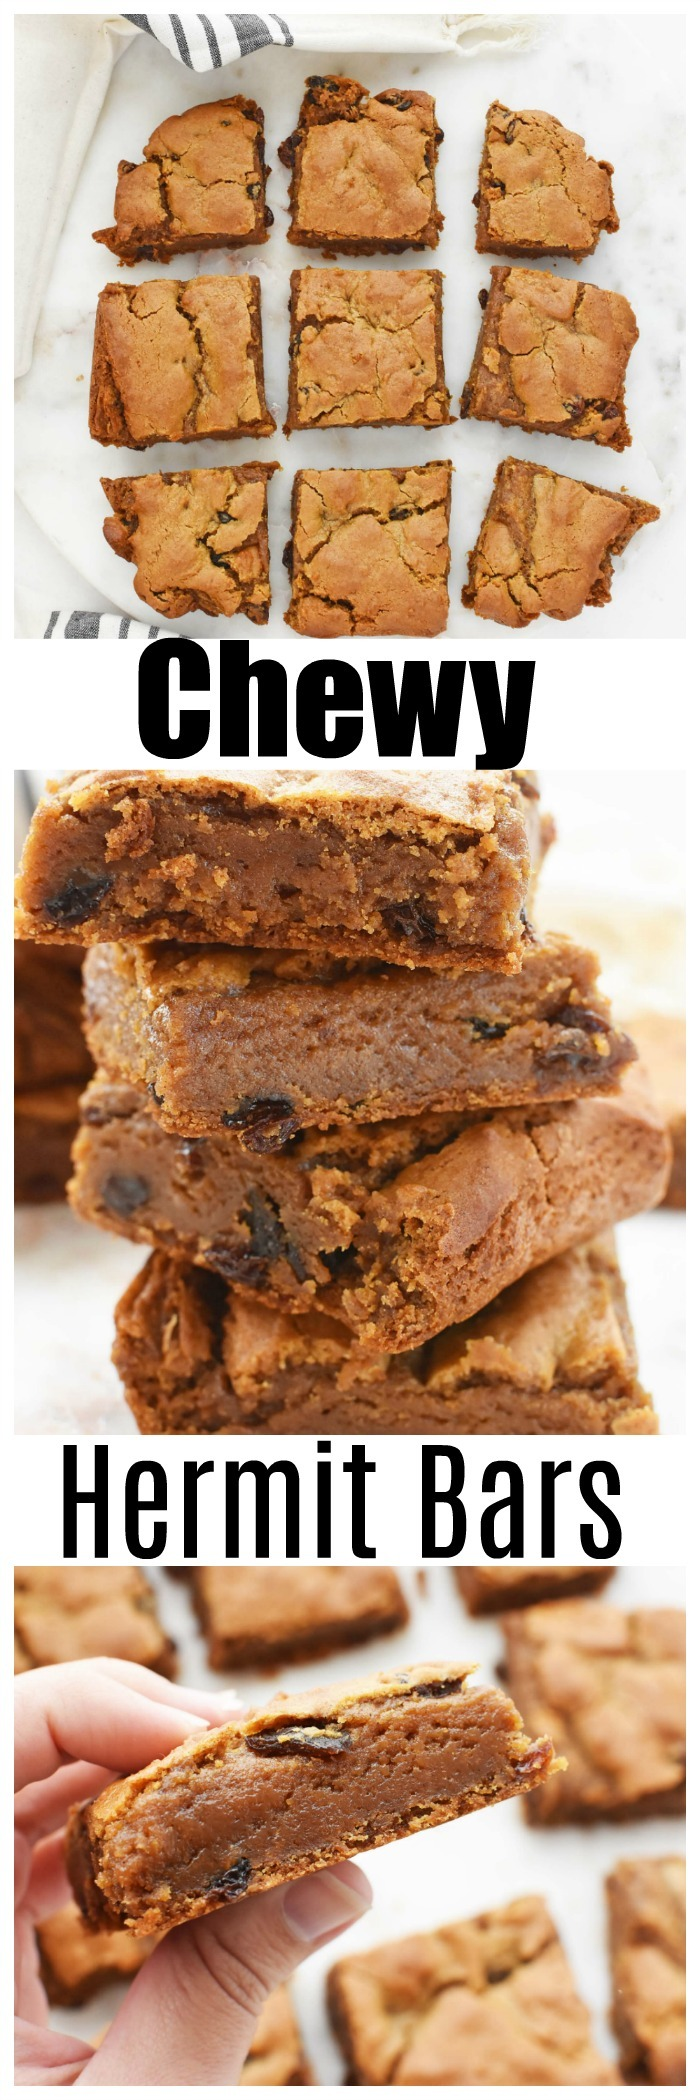 Chewy Hermit Bars Recipe